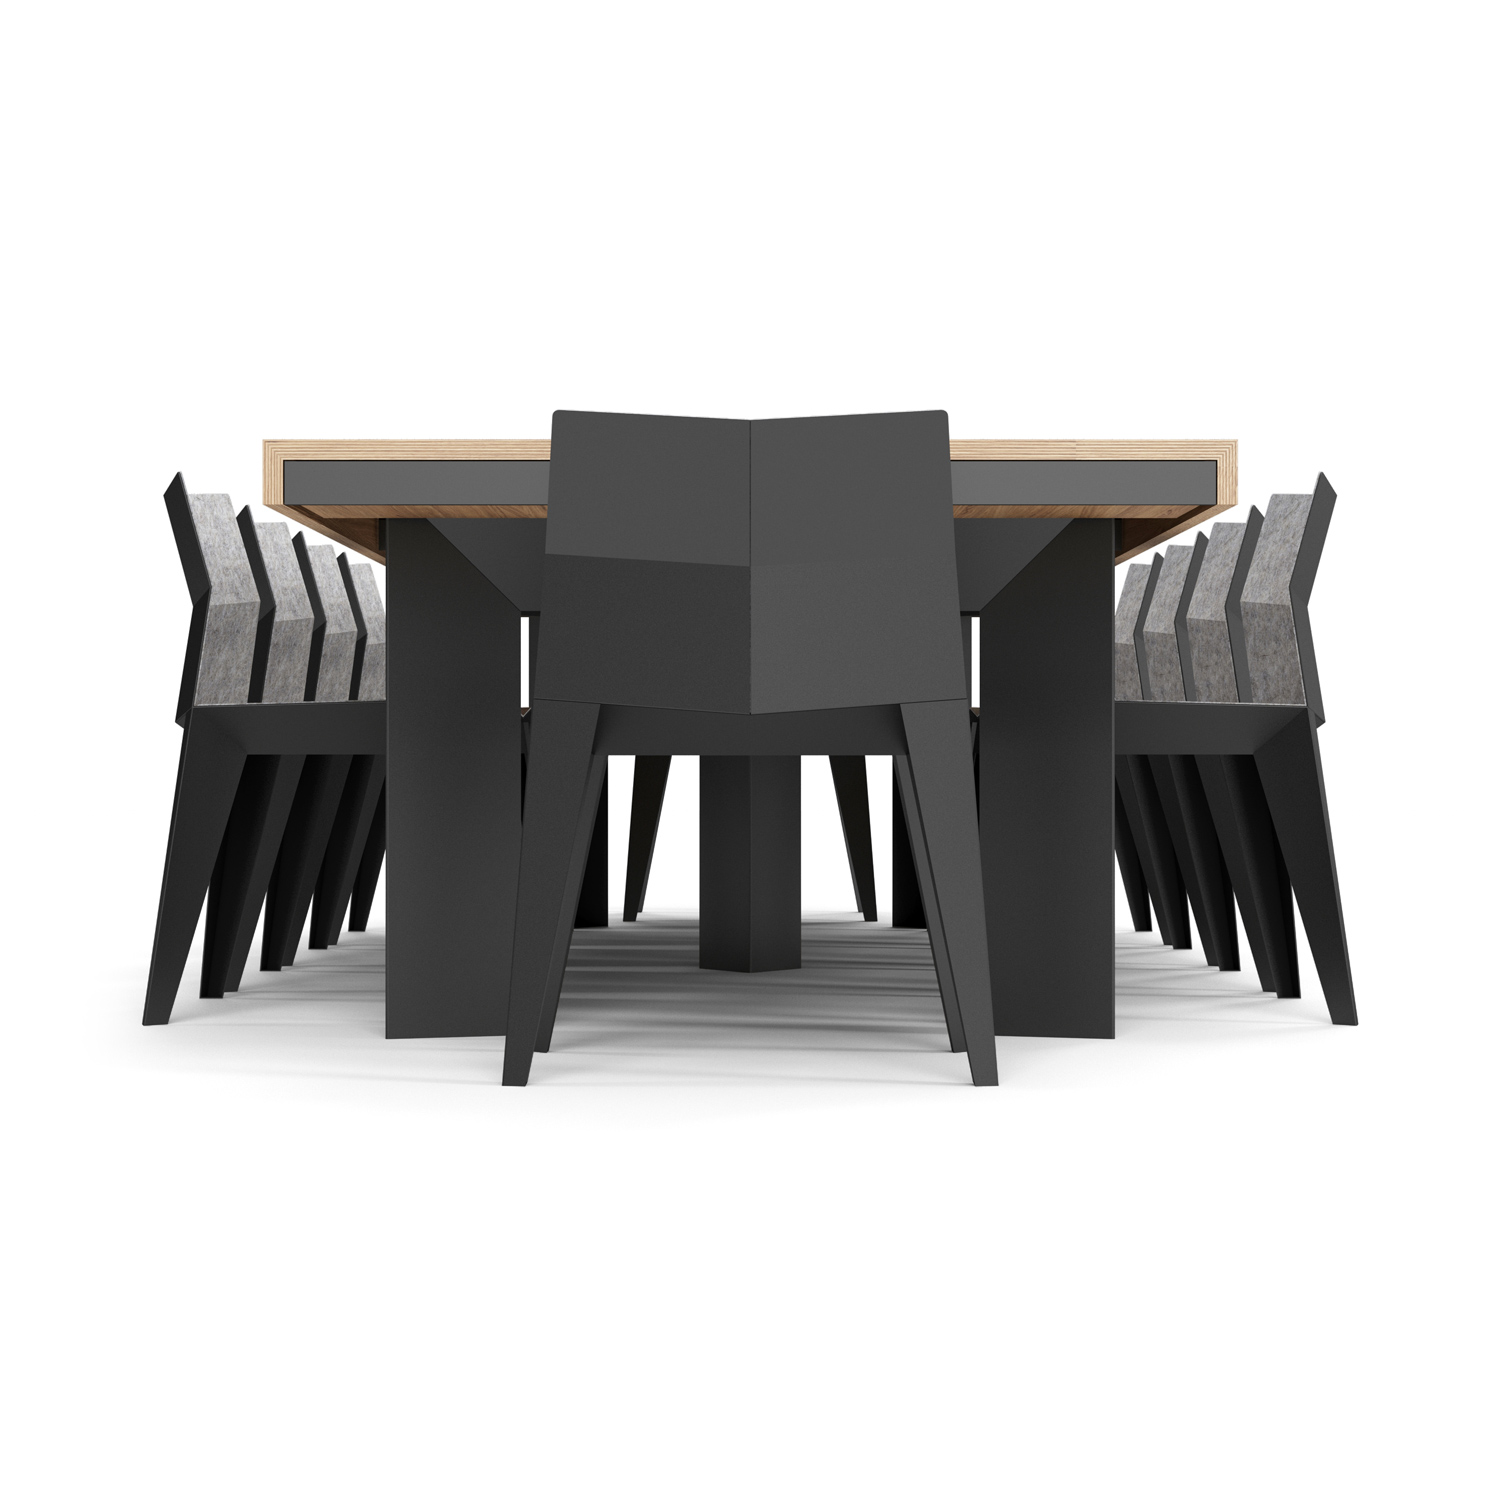 OE4/M conference table